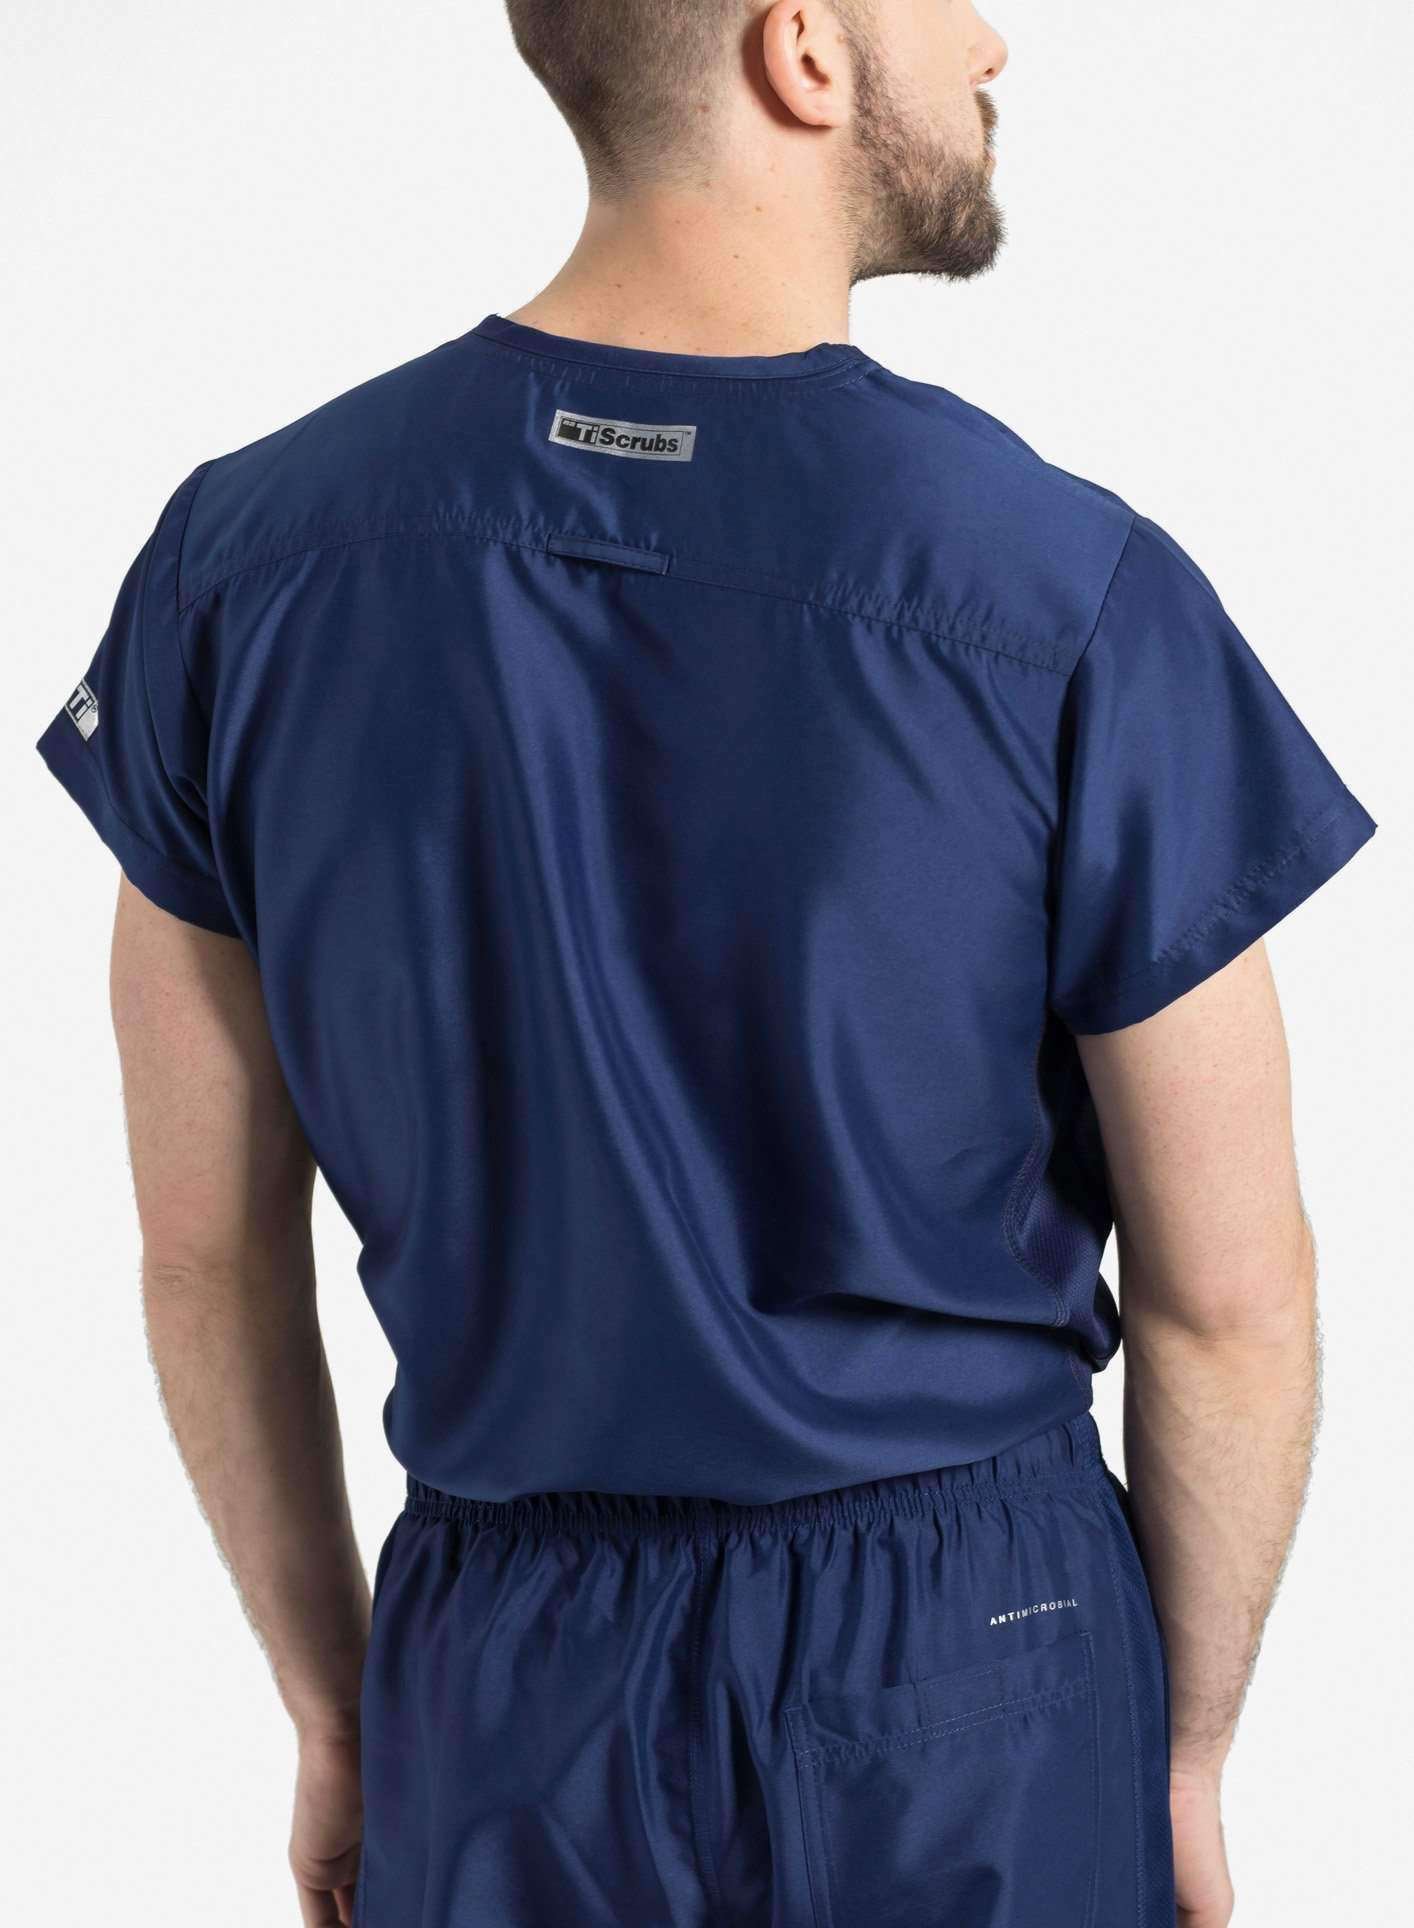 mens Elements short sleeve classic one pocket scrub top navy blue